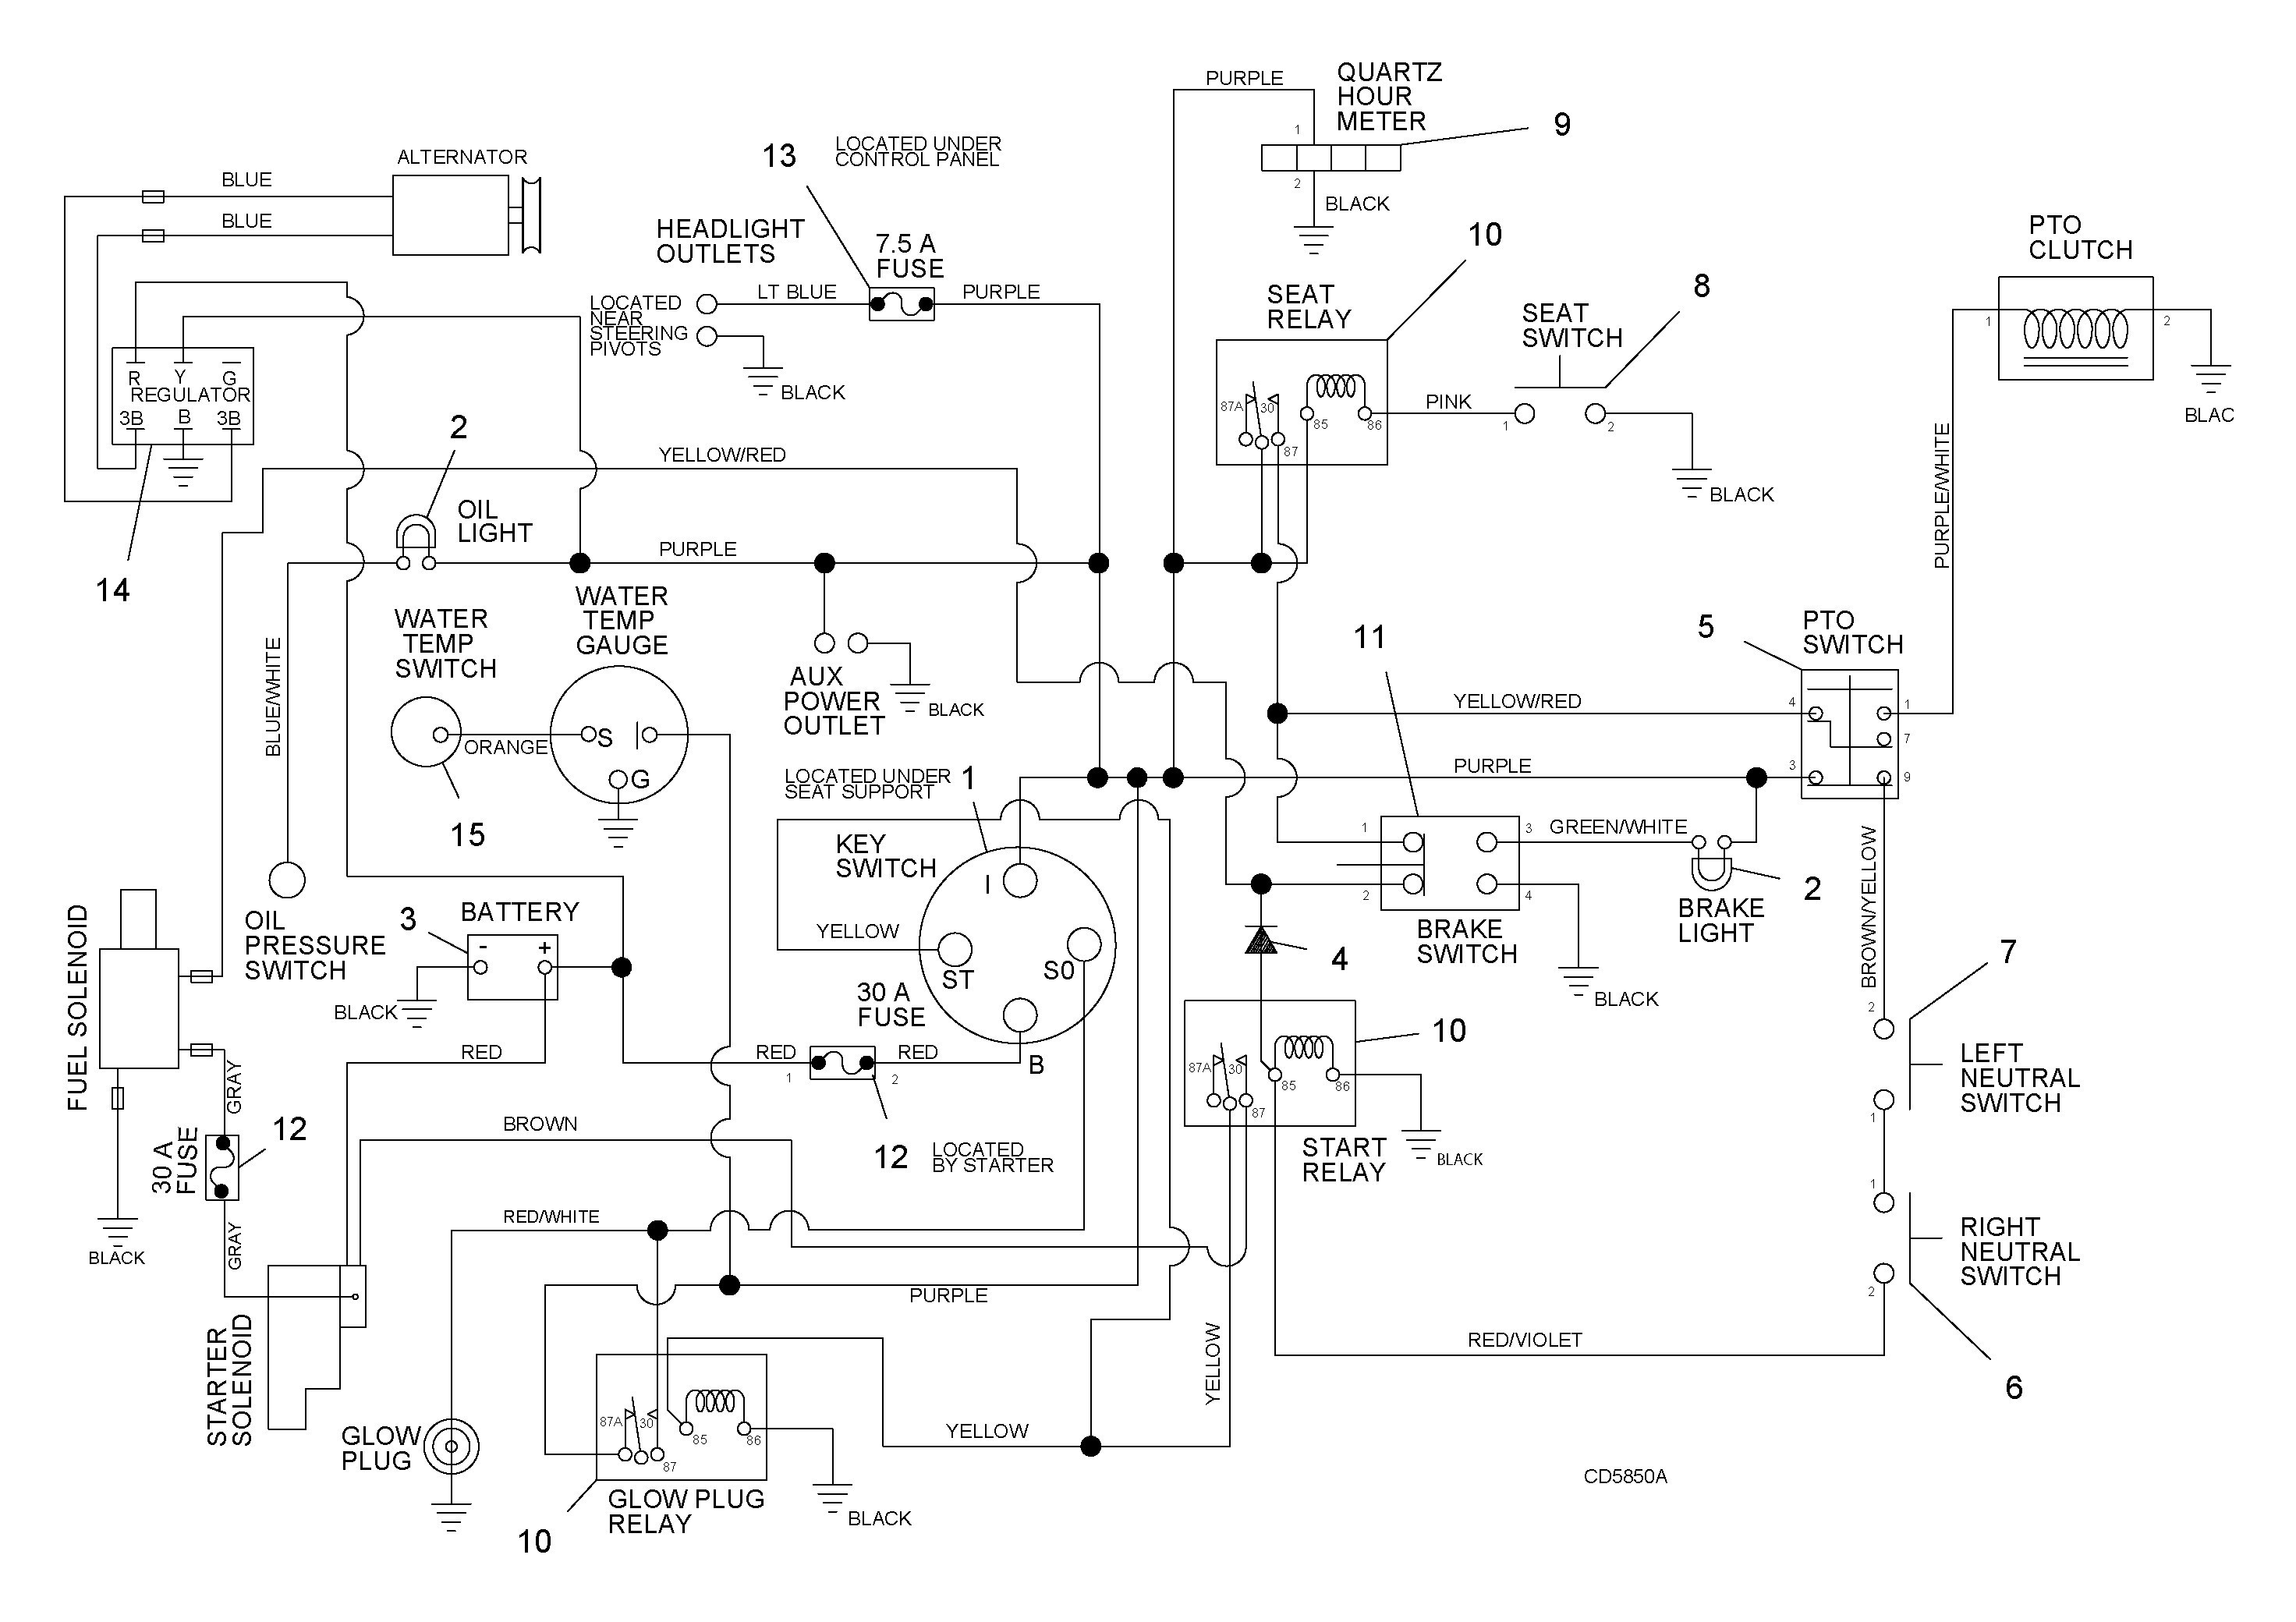 kubota ignition switch wiring diagram Collection-Kubota Ignition Switch Wiring Diagram Valid Kubota Generator Wiring Diagram Valid Kubota Wiring Diagram Pdf 13-s